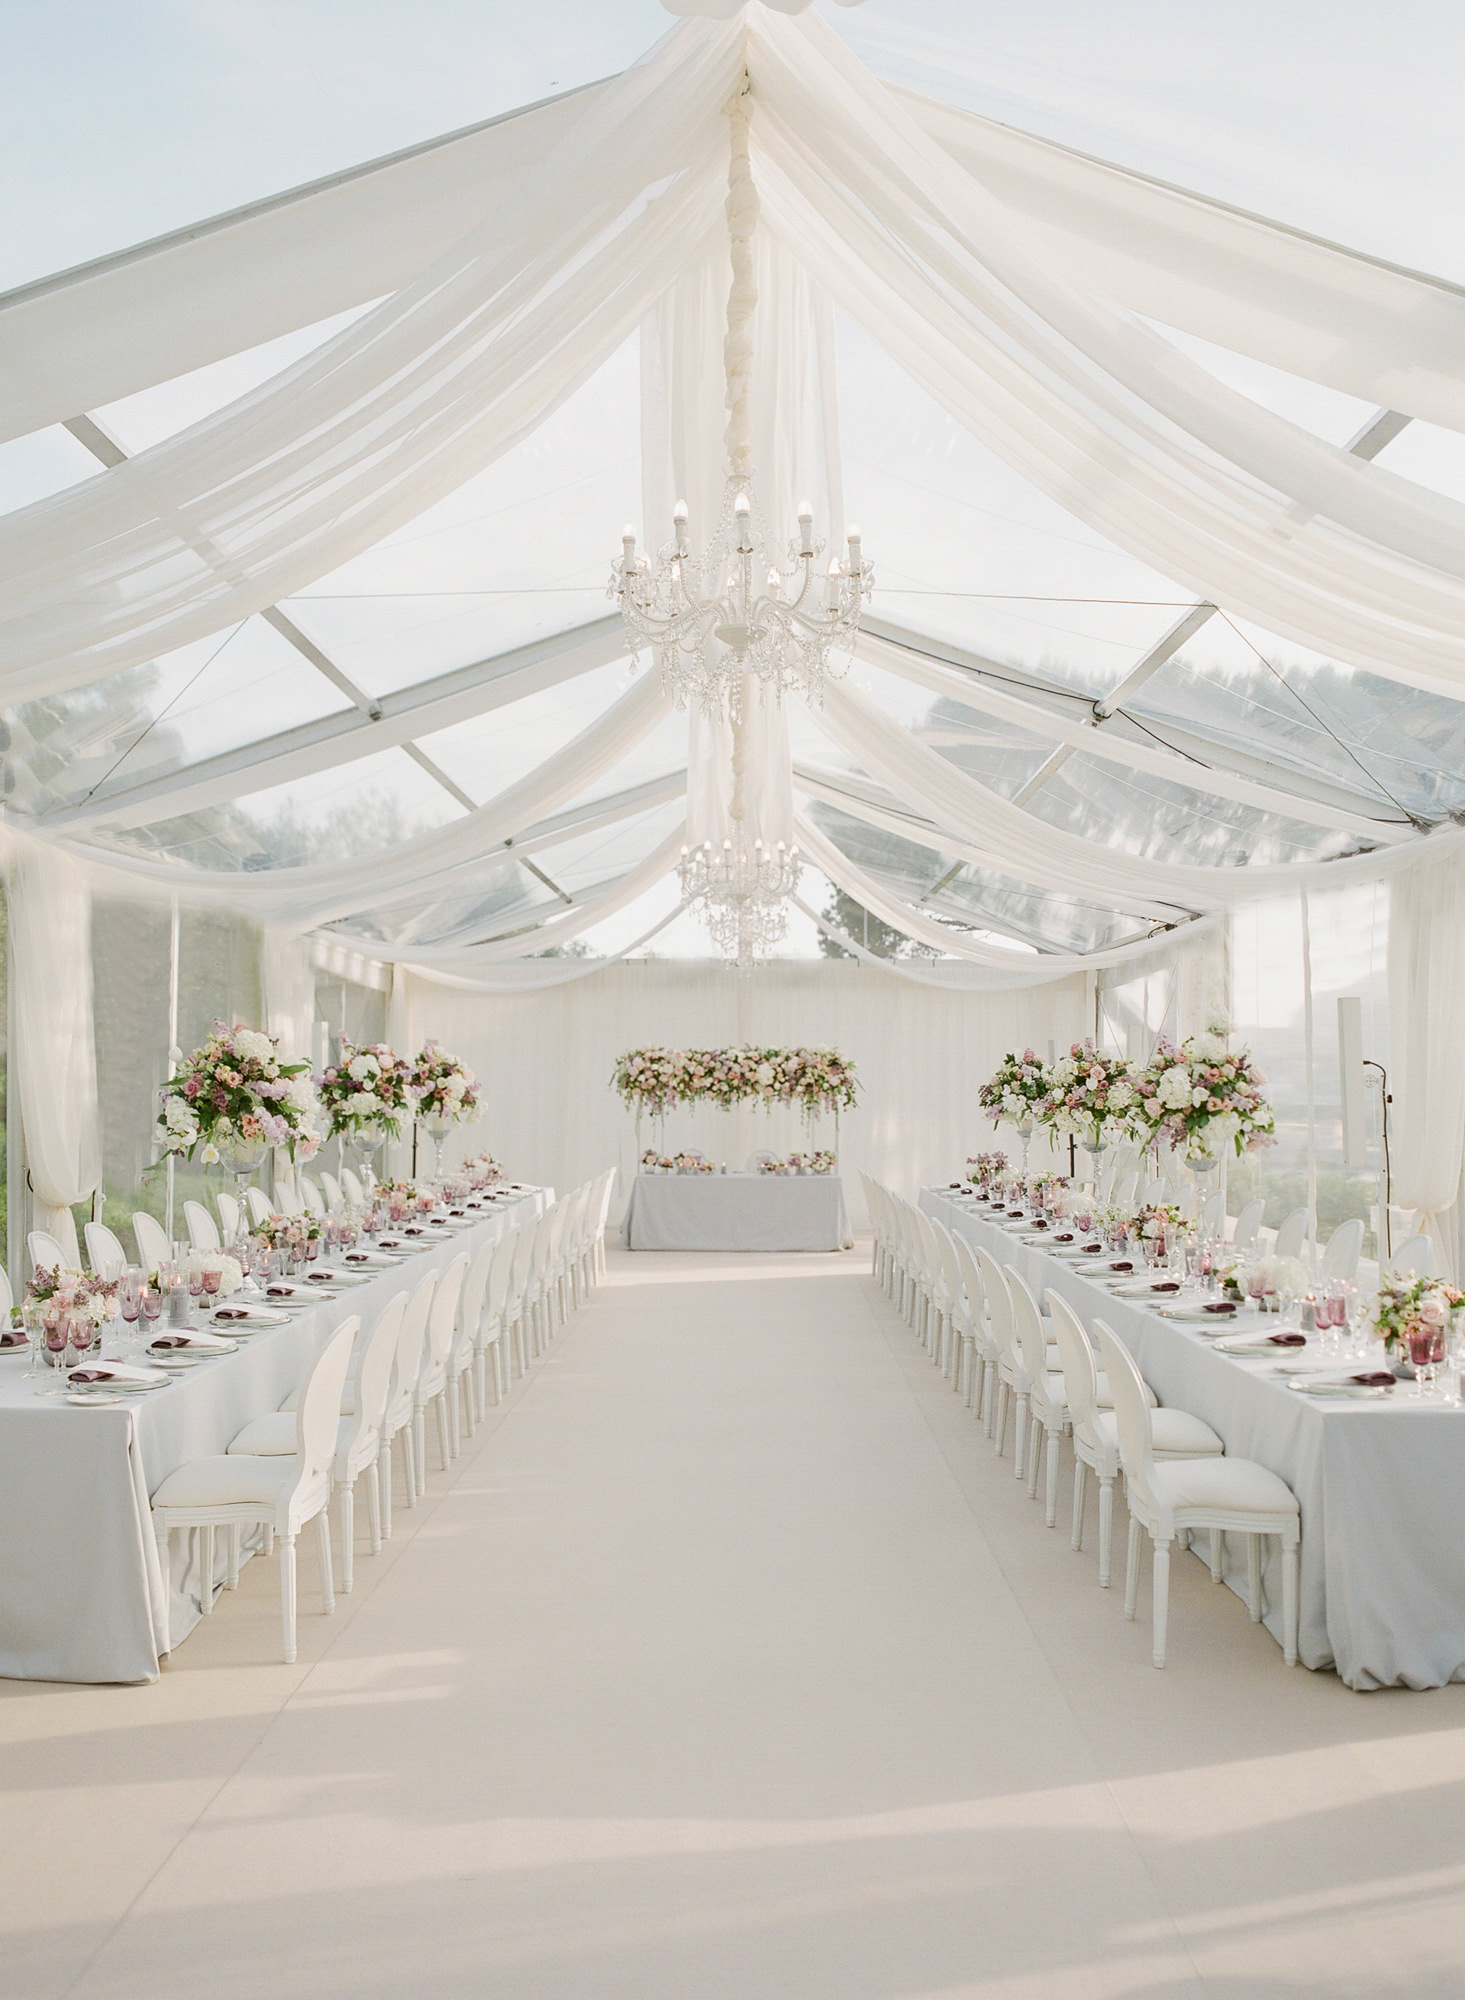 Chiffon tented wedding reception with opera chairs - Greg Finck Photography